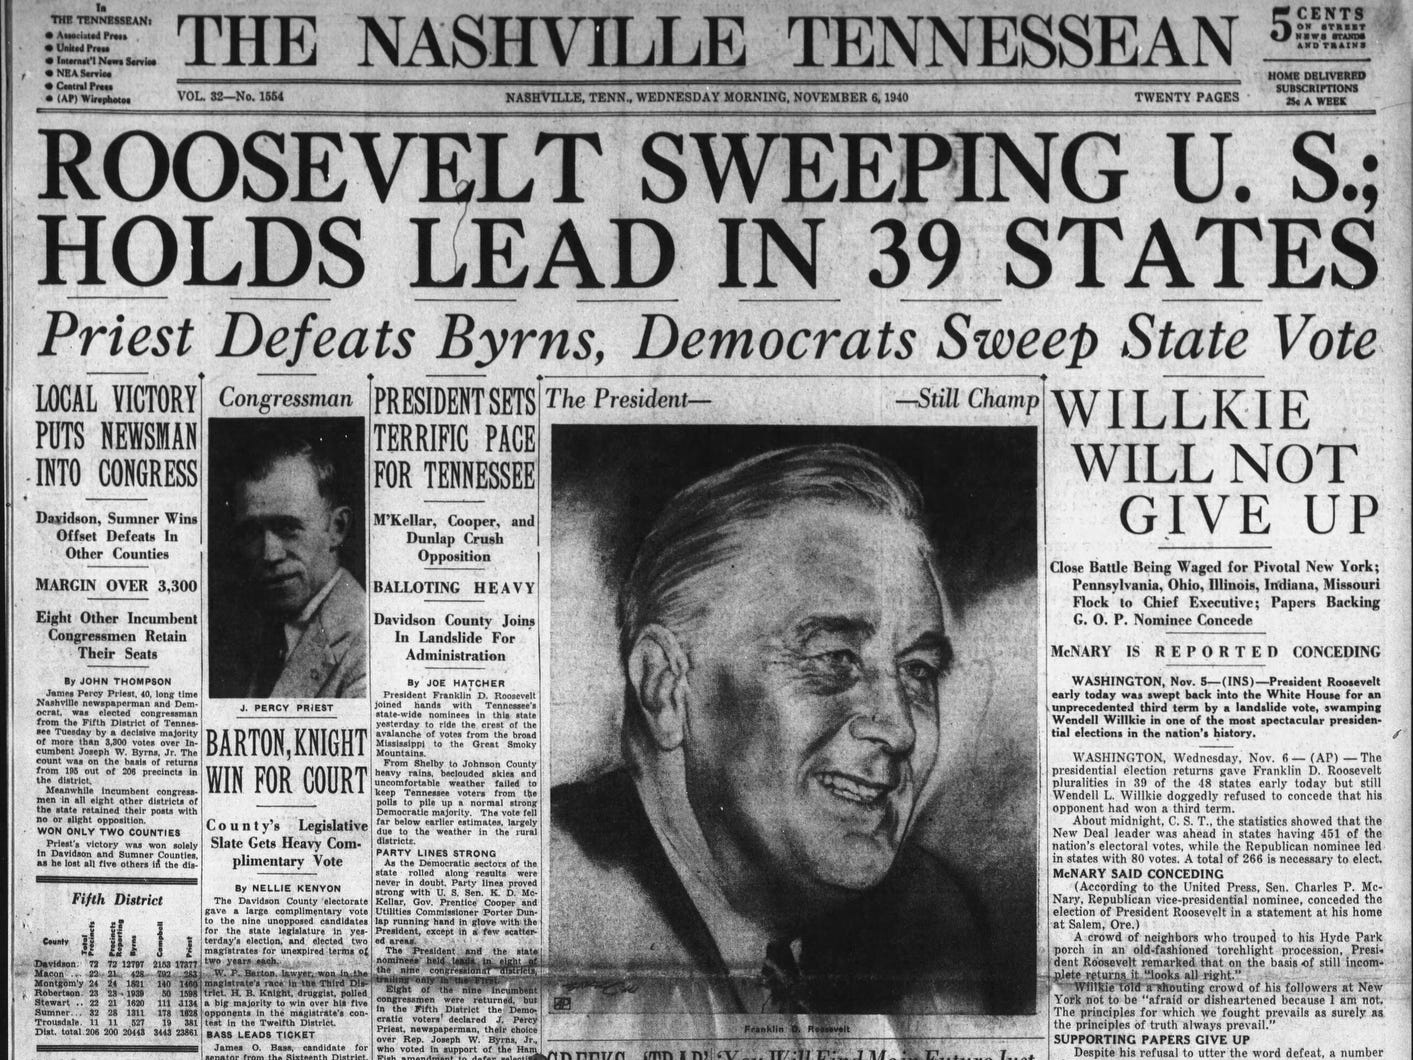 The front page of the Nov. 6, 1940 of The Tennessean which Franklin D. Roosevelt won the presidential election.